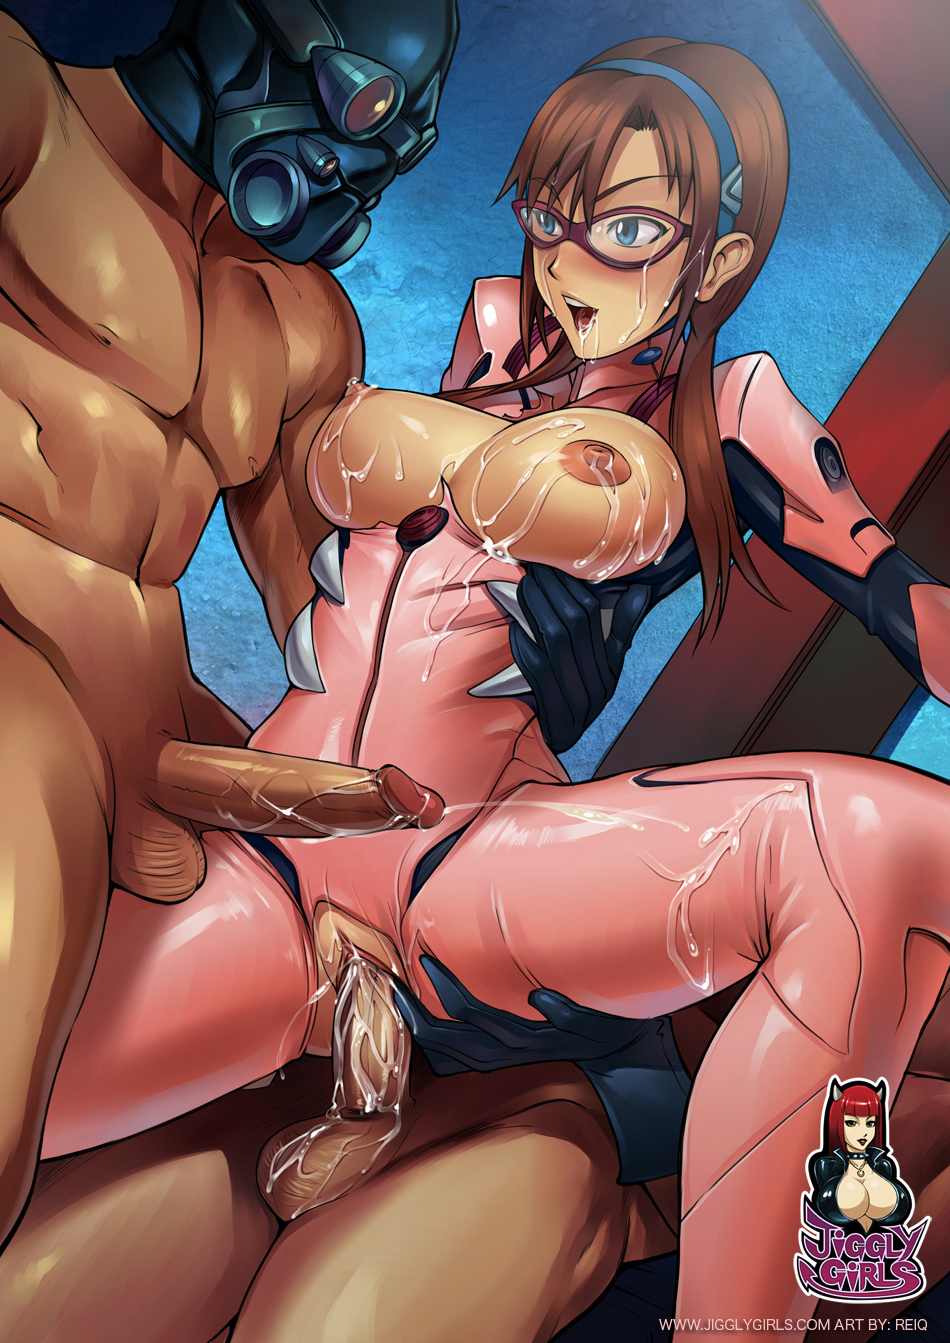 Sexy 3d women e-hentai gallery hentai photo